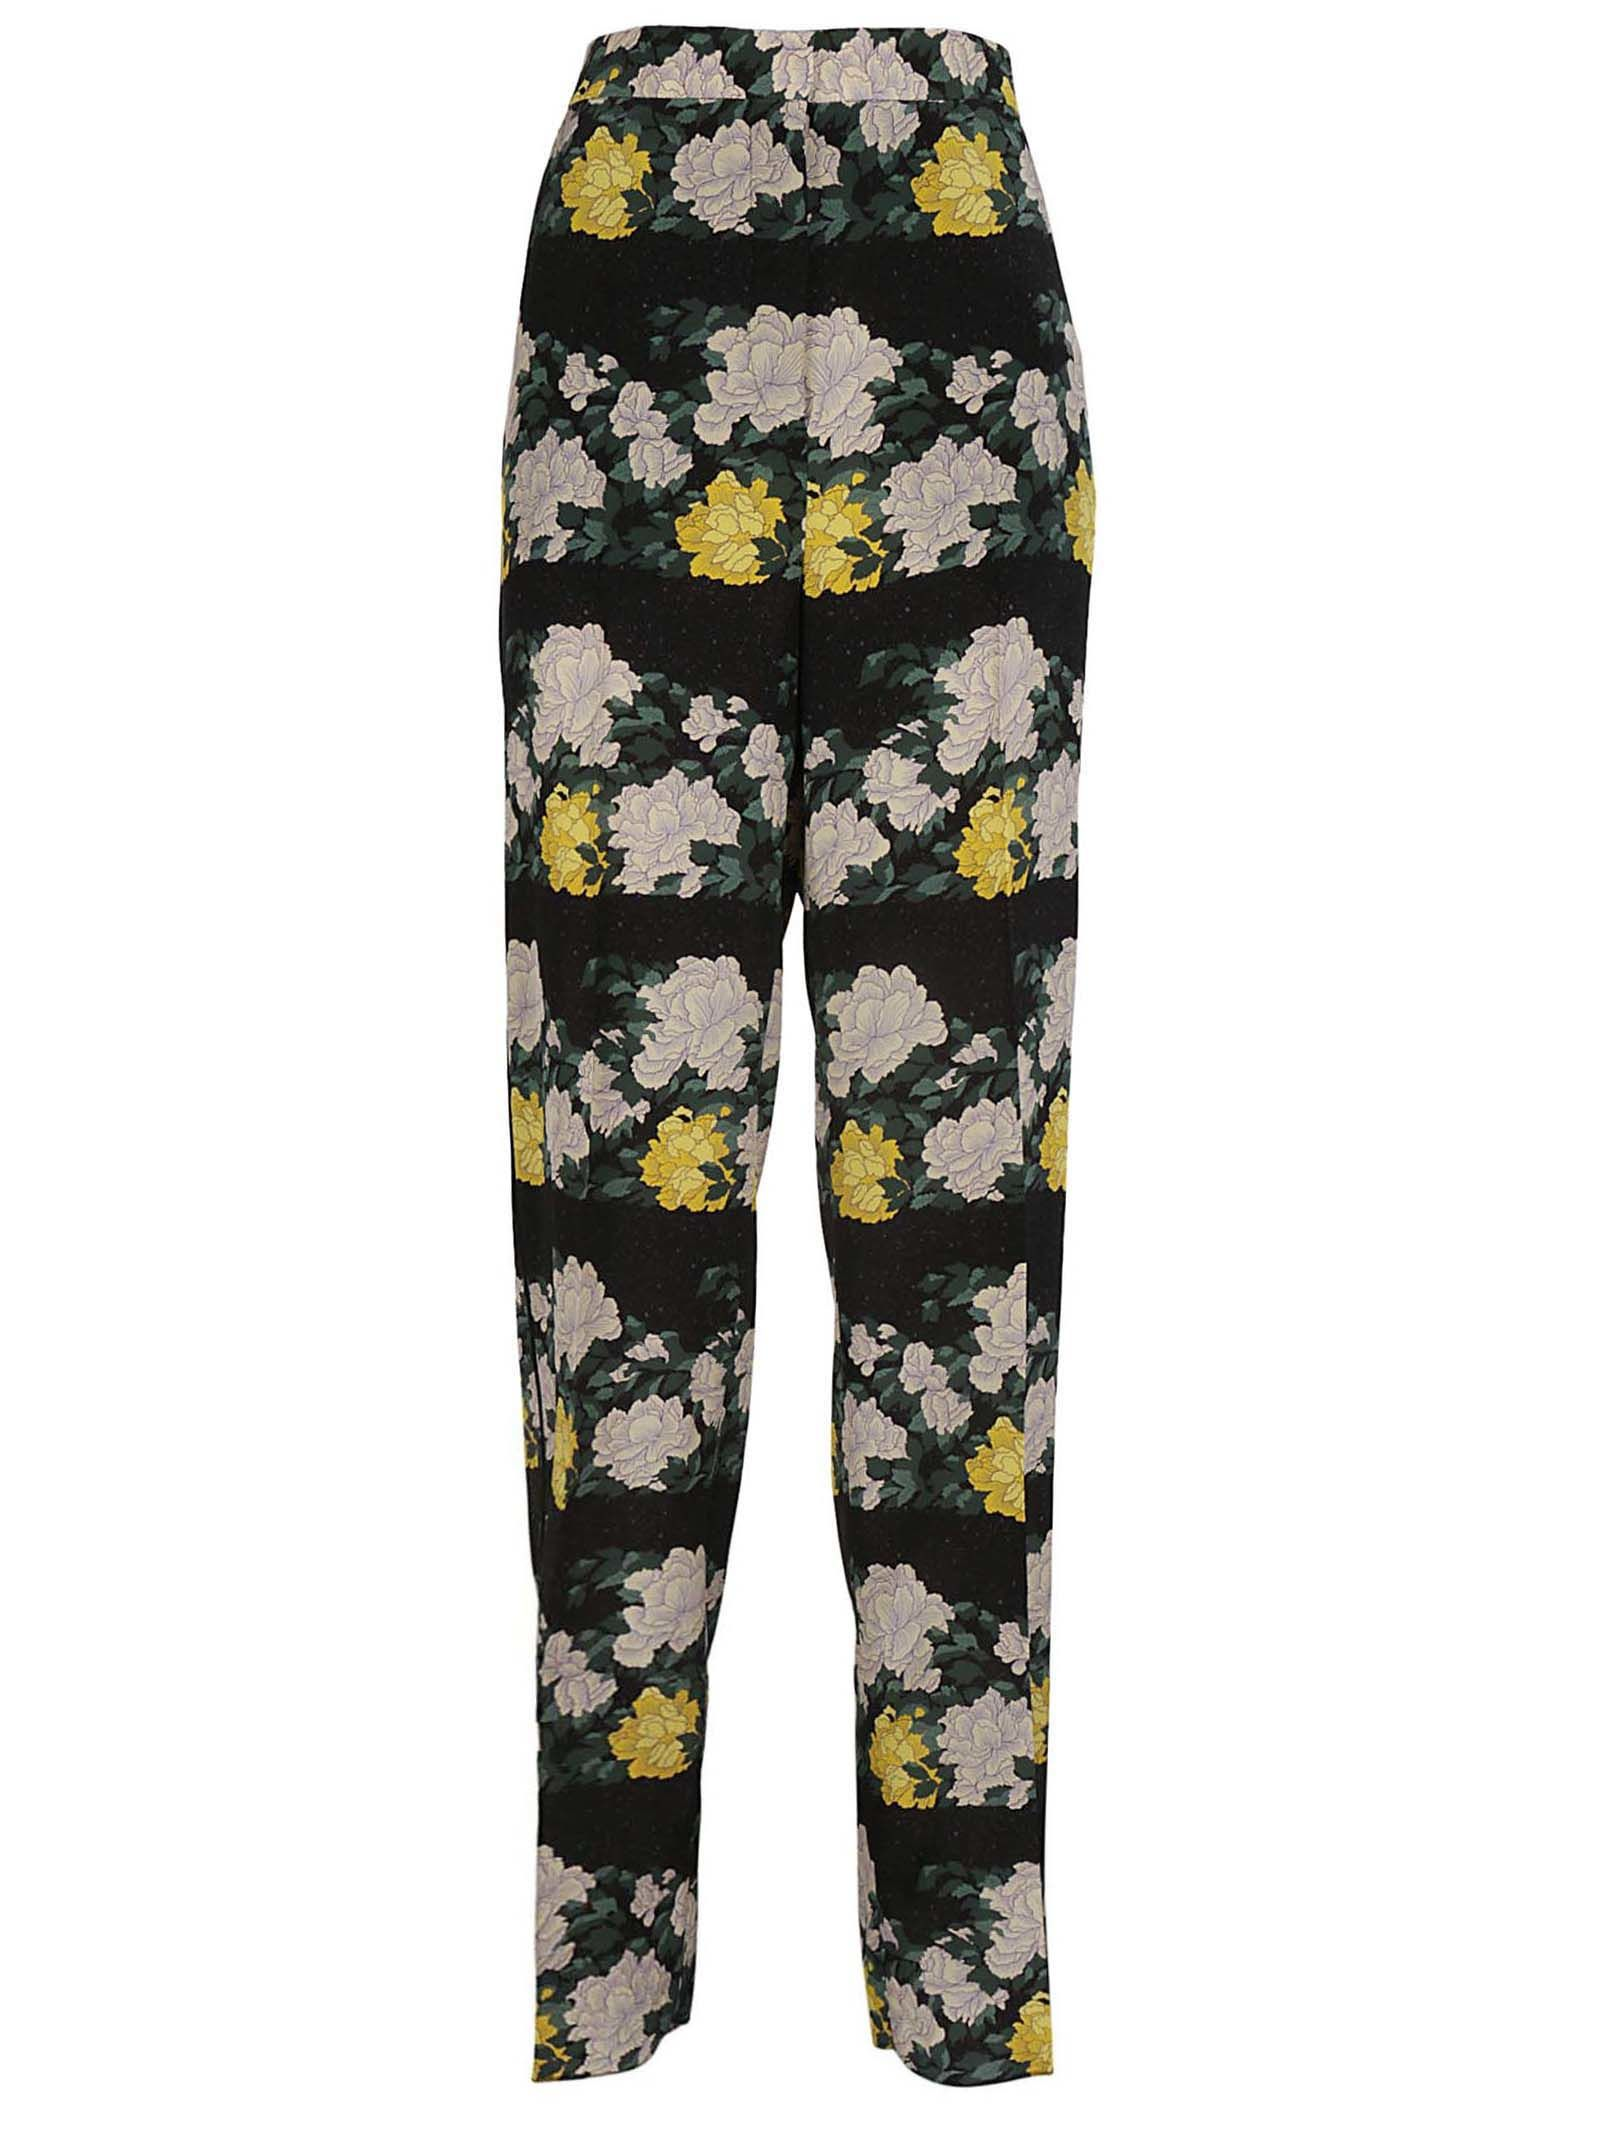 FLORAL TROUSERS from Italist.com